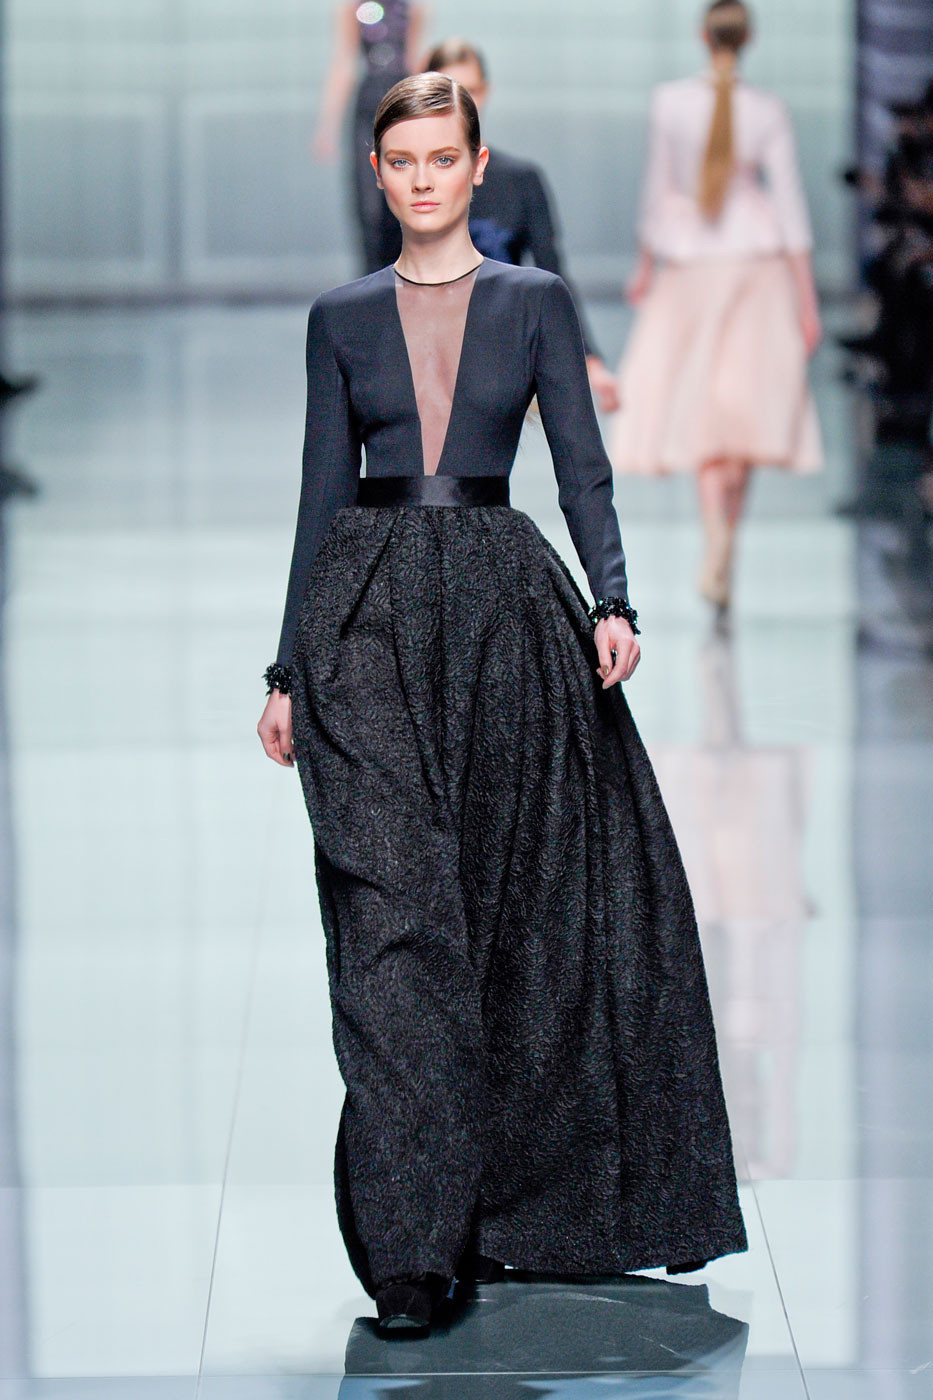 Christian Dior Fall 2012 Runway Pictures